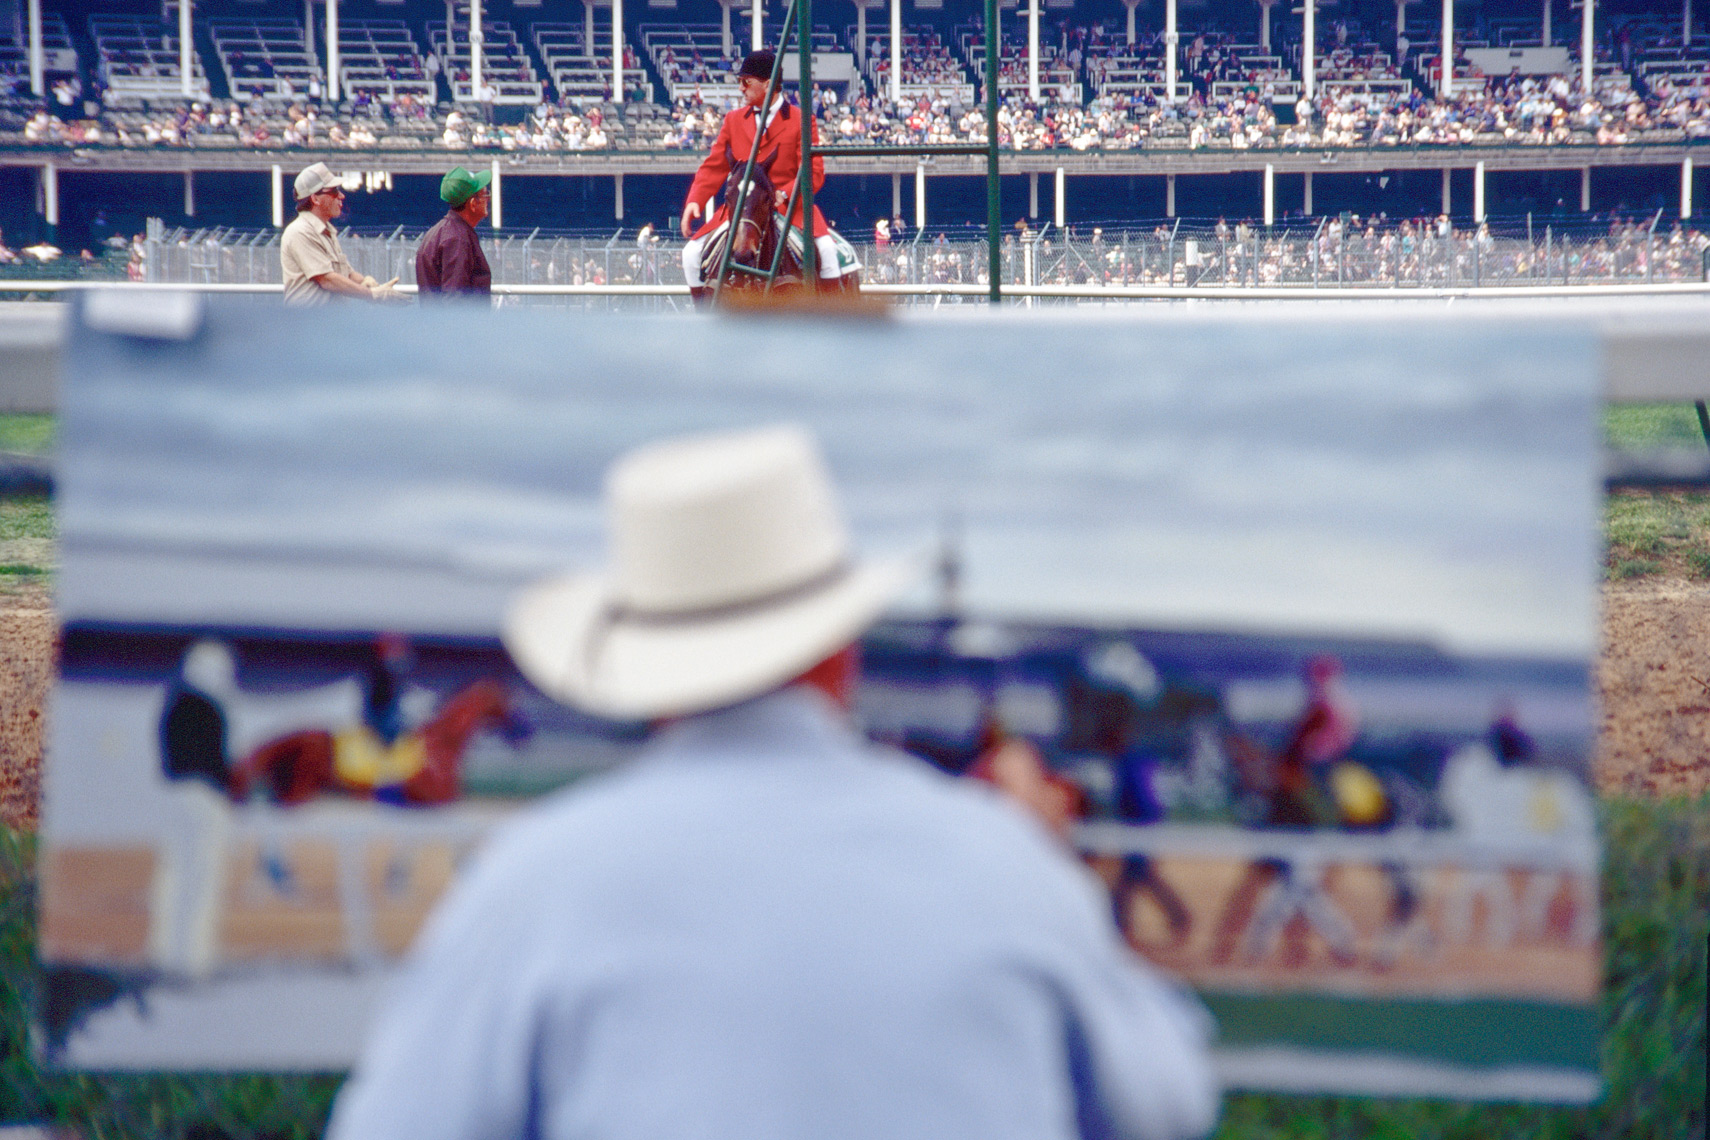 malyszko_kentucky_derby_photo_014